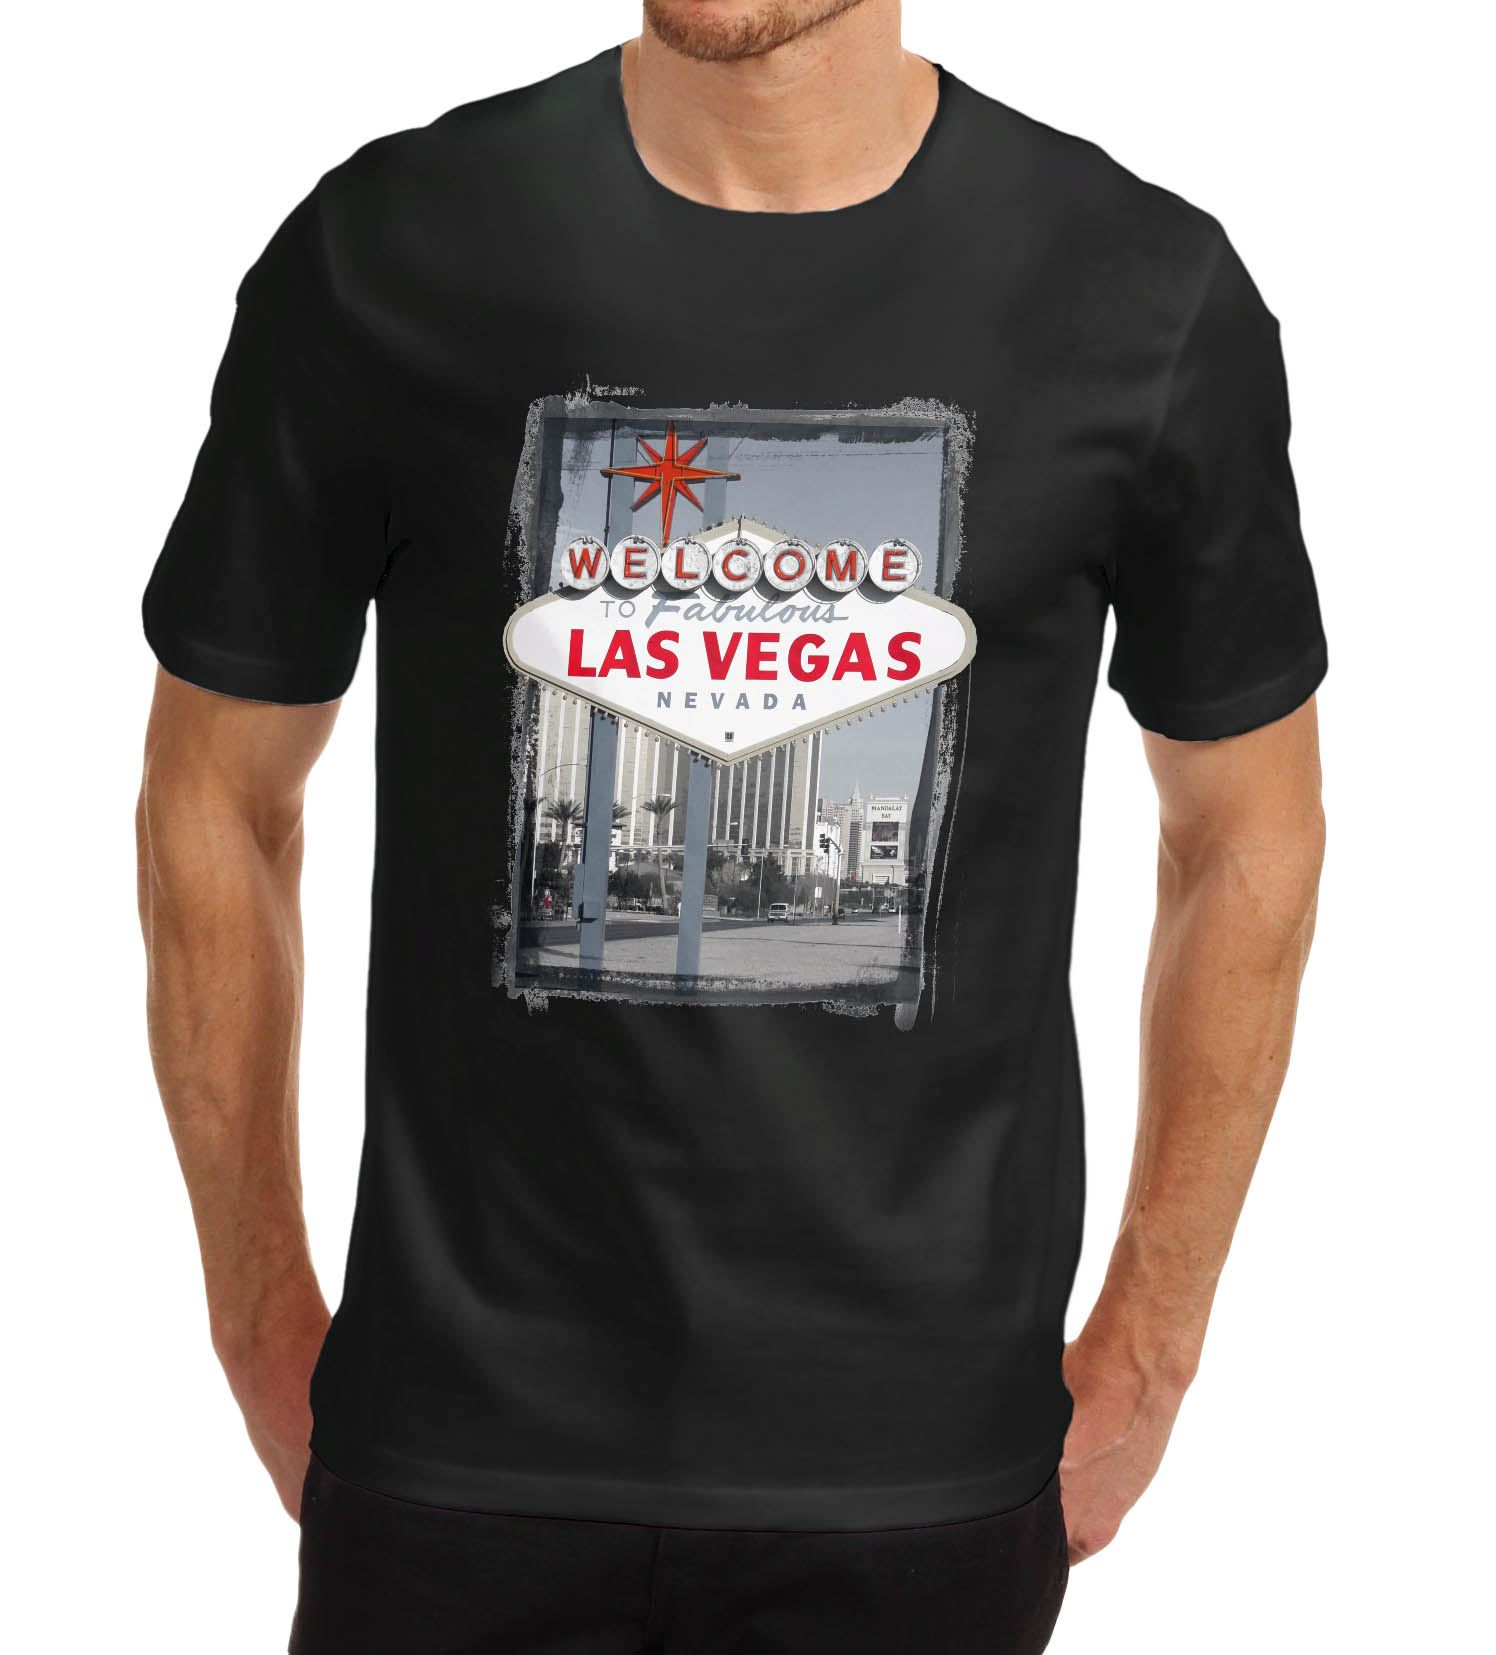 Men-039-s-Welcome-to-Las-Vegas-Iconic-sign-Printed-T-Shirt Indexbild 4